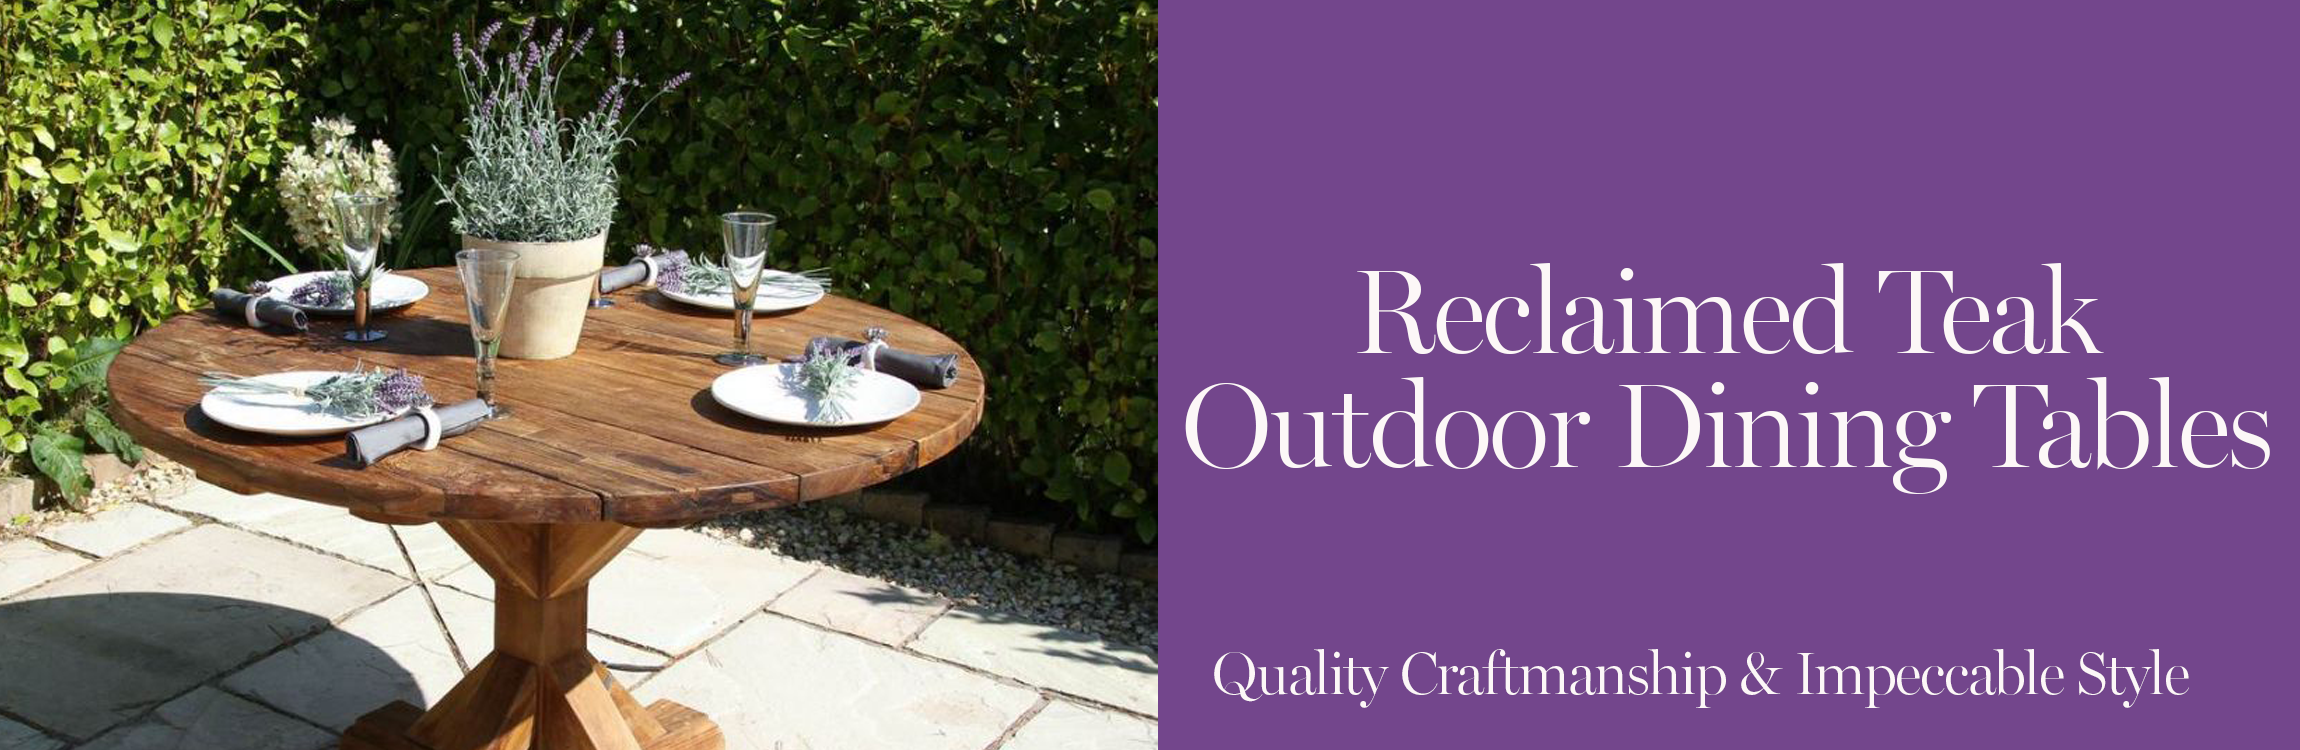 Luxury Reclaimed Outdoor Dining Tables